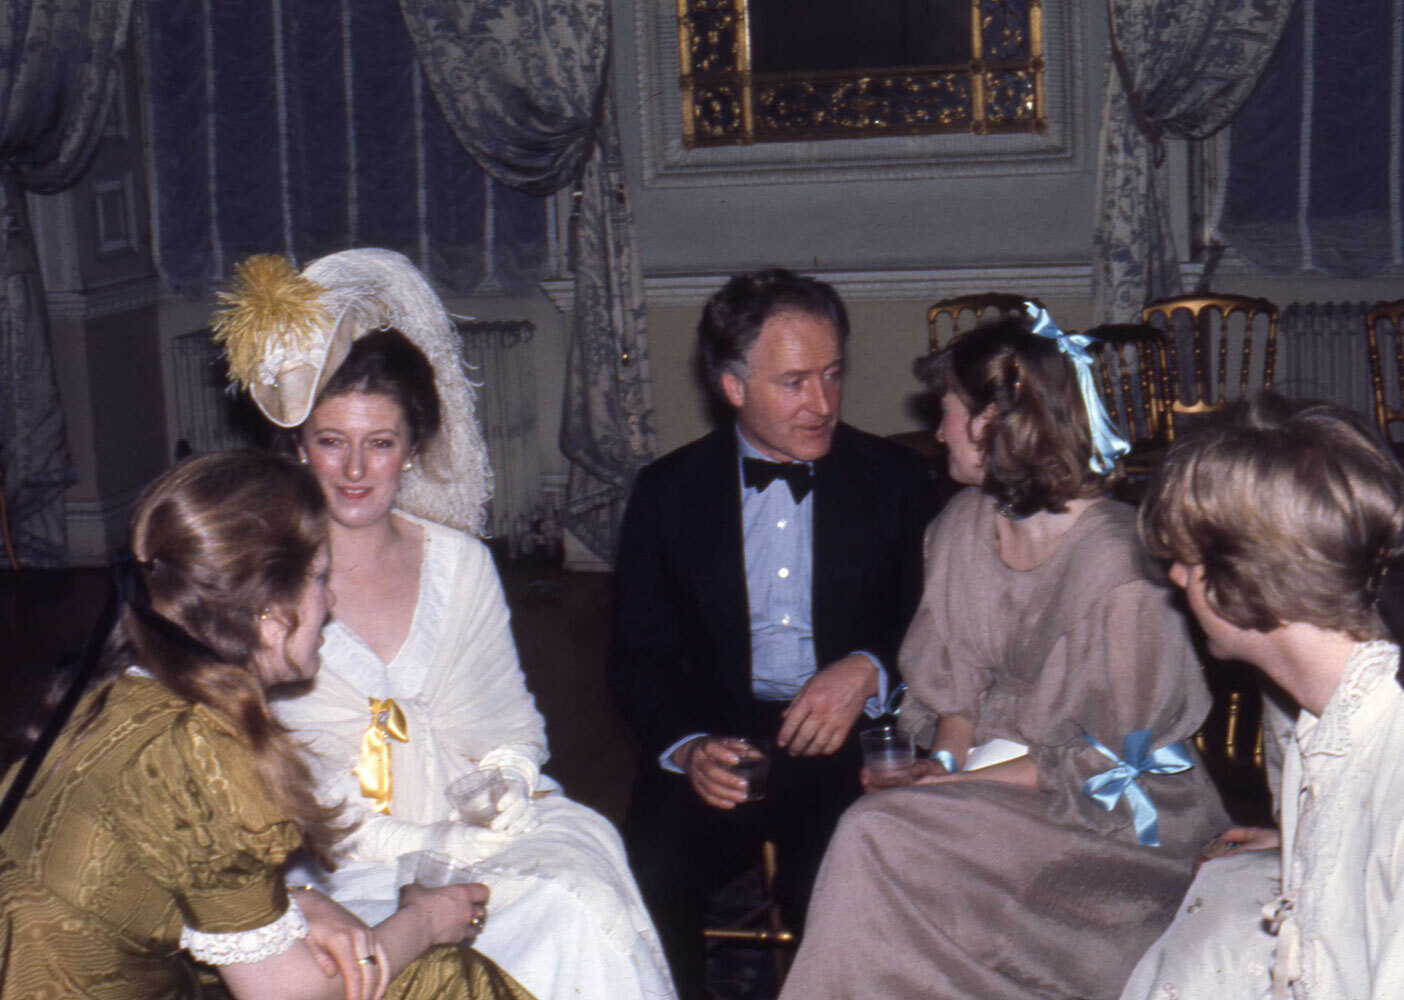 img002-Desmond-Guinness-and-friends-at-Chandos-House-London-in-1977.WEB.jpg#asset:14945